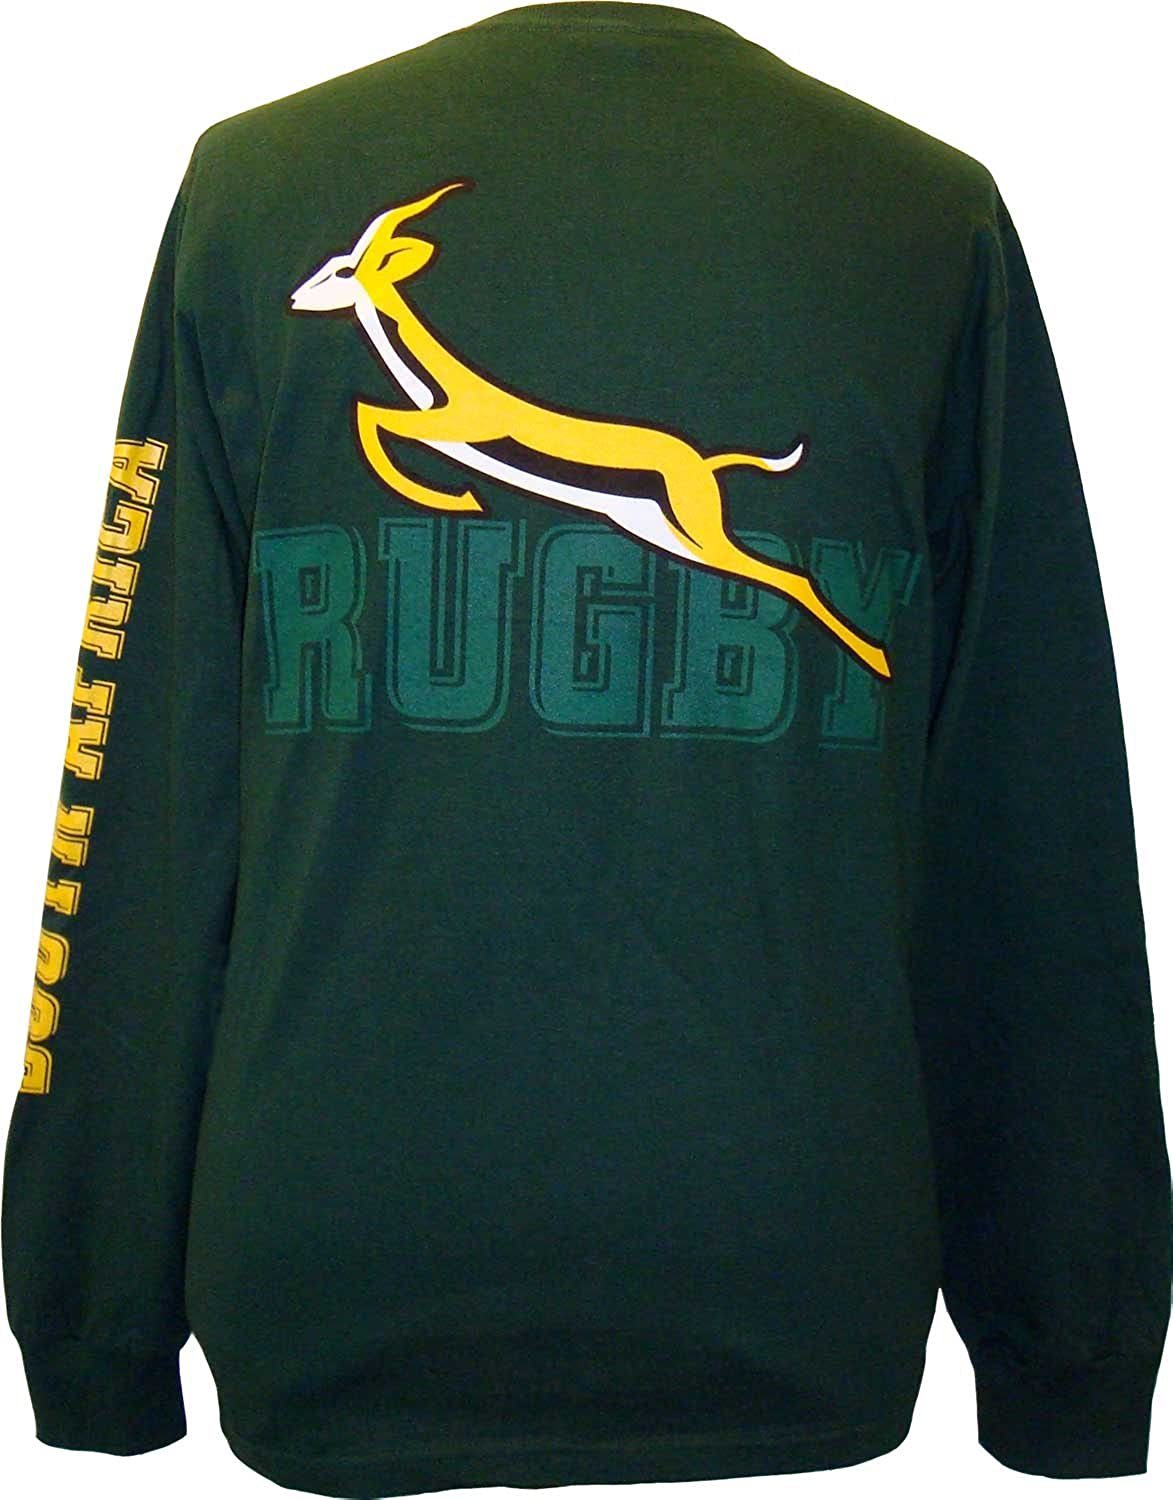 South Africa Rugby Jersey 2015 Long-sleeve South Africa Rugby